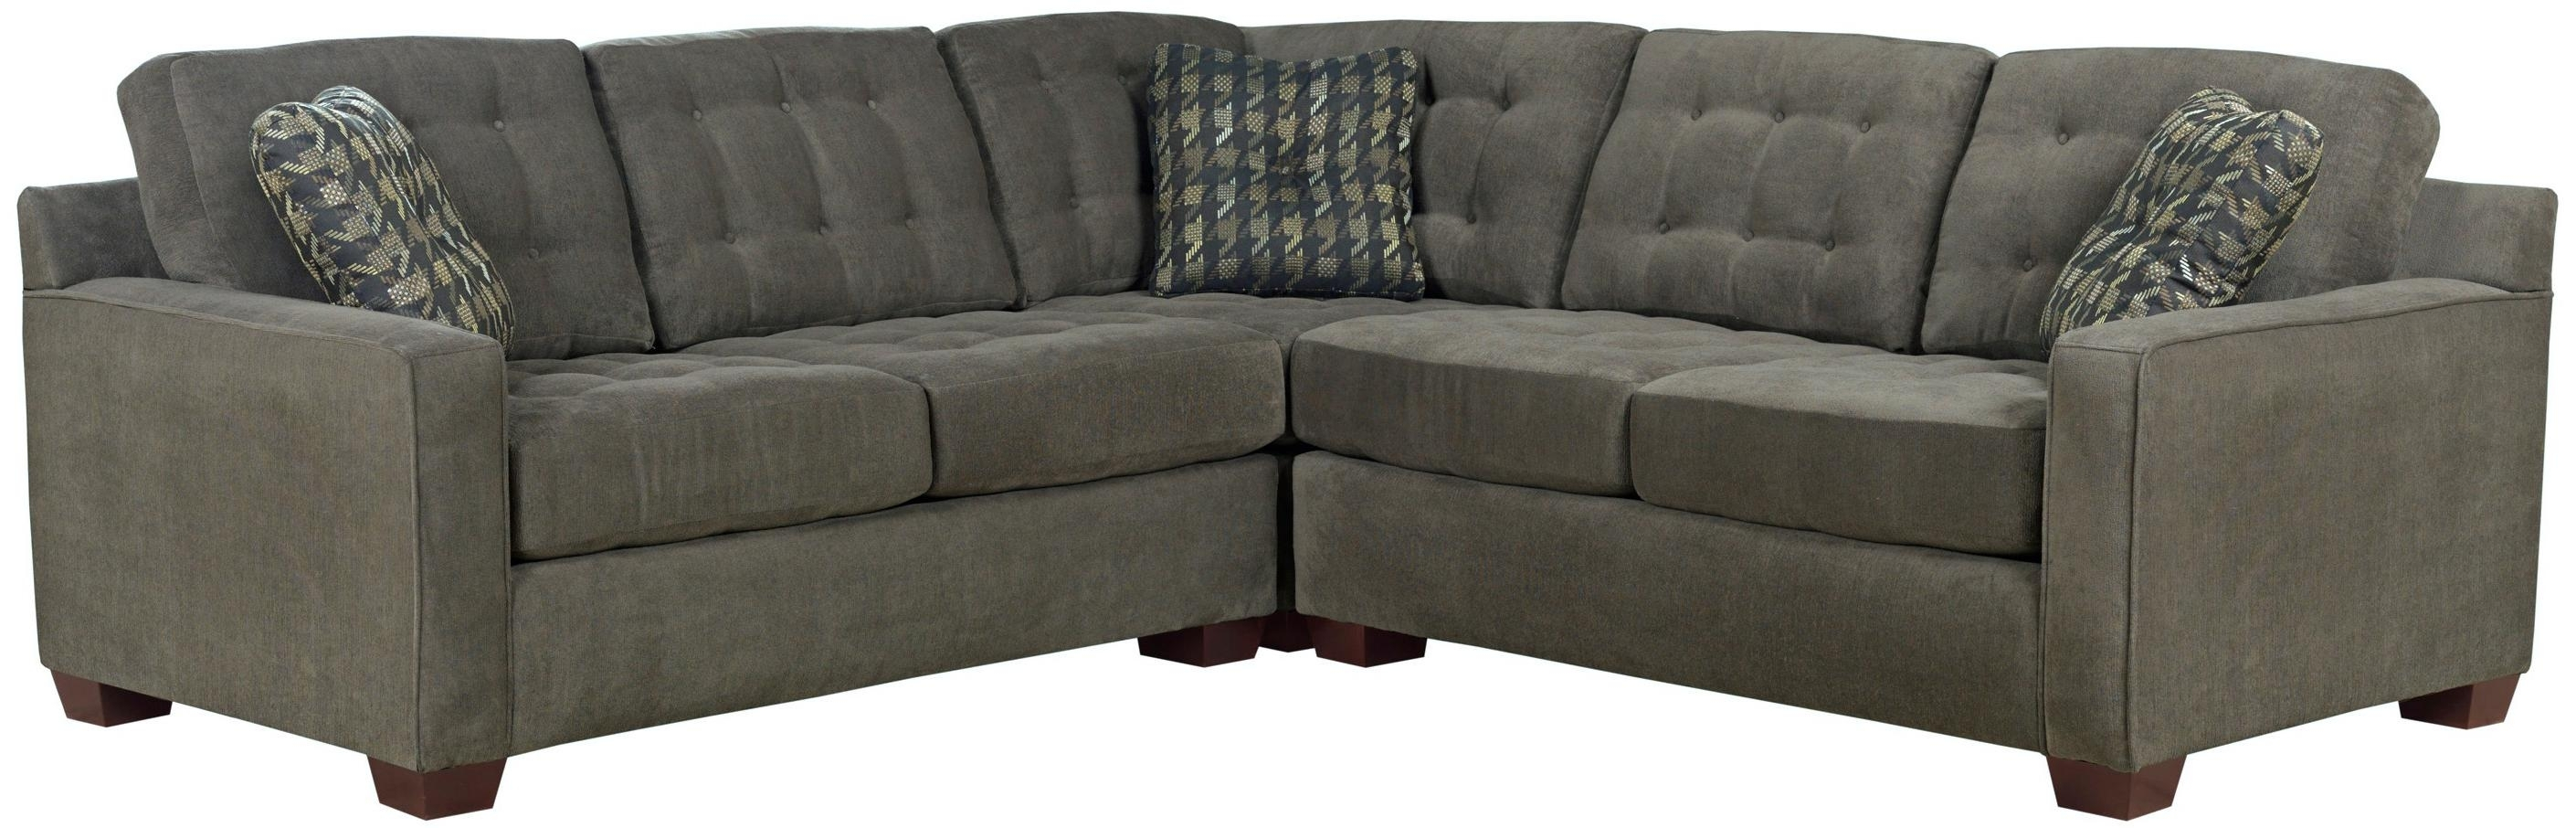 Broyhill Furniture Tribeca Contemporary L Shaped Sectional Sofa Within Sam Levitz Sectional Sofas (View 10 of 10)